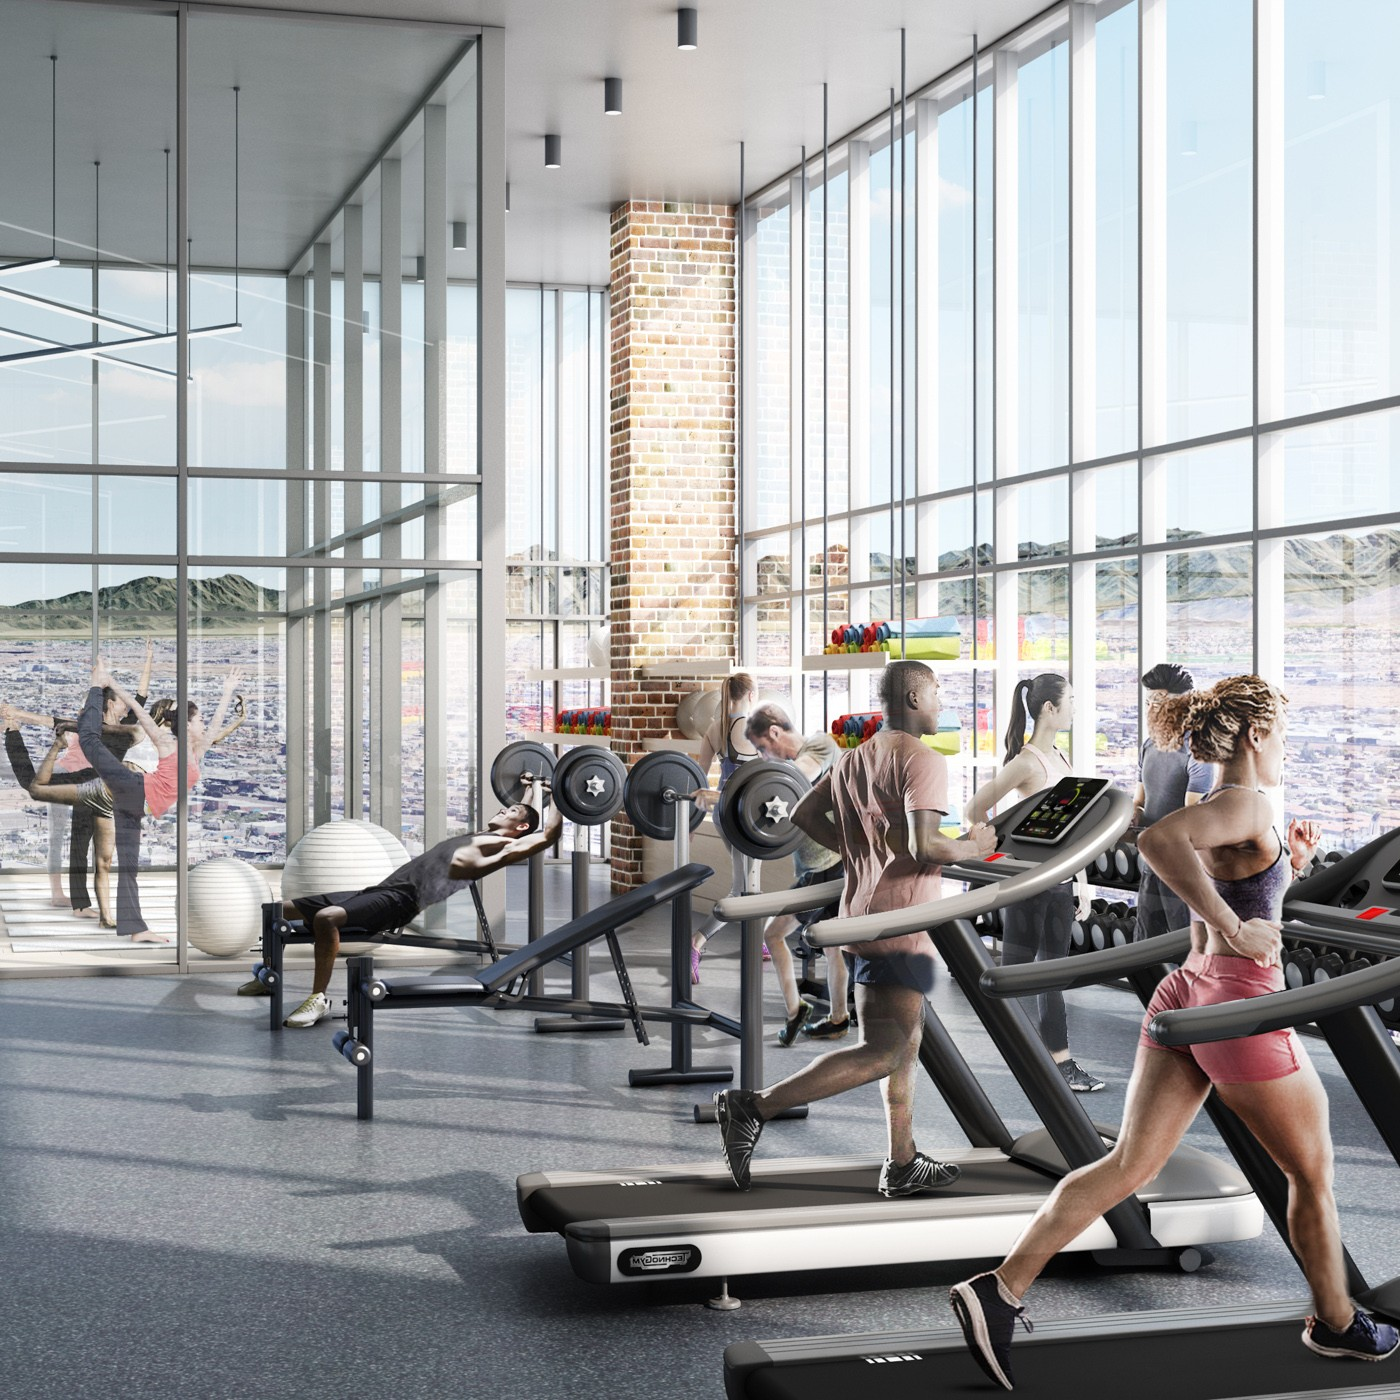 Interior of X Phoenix gym with residents on treadmills